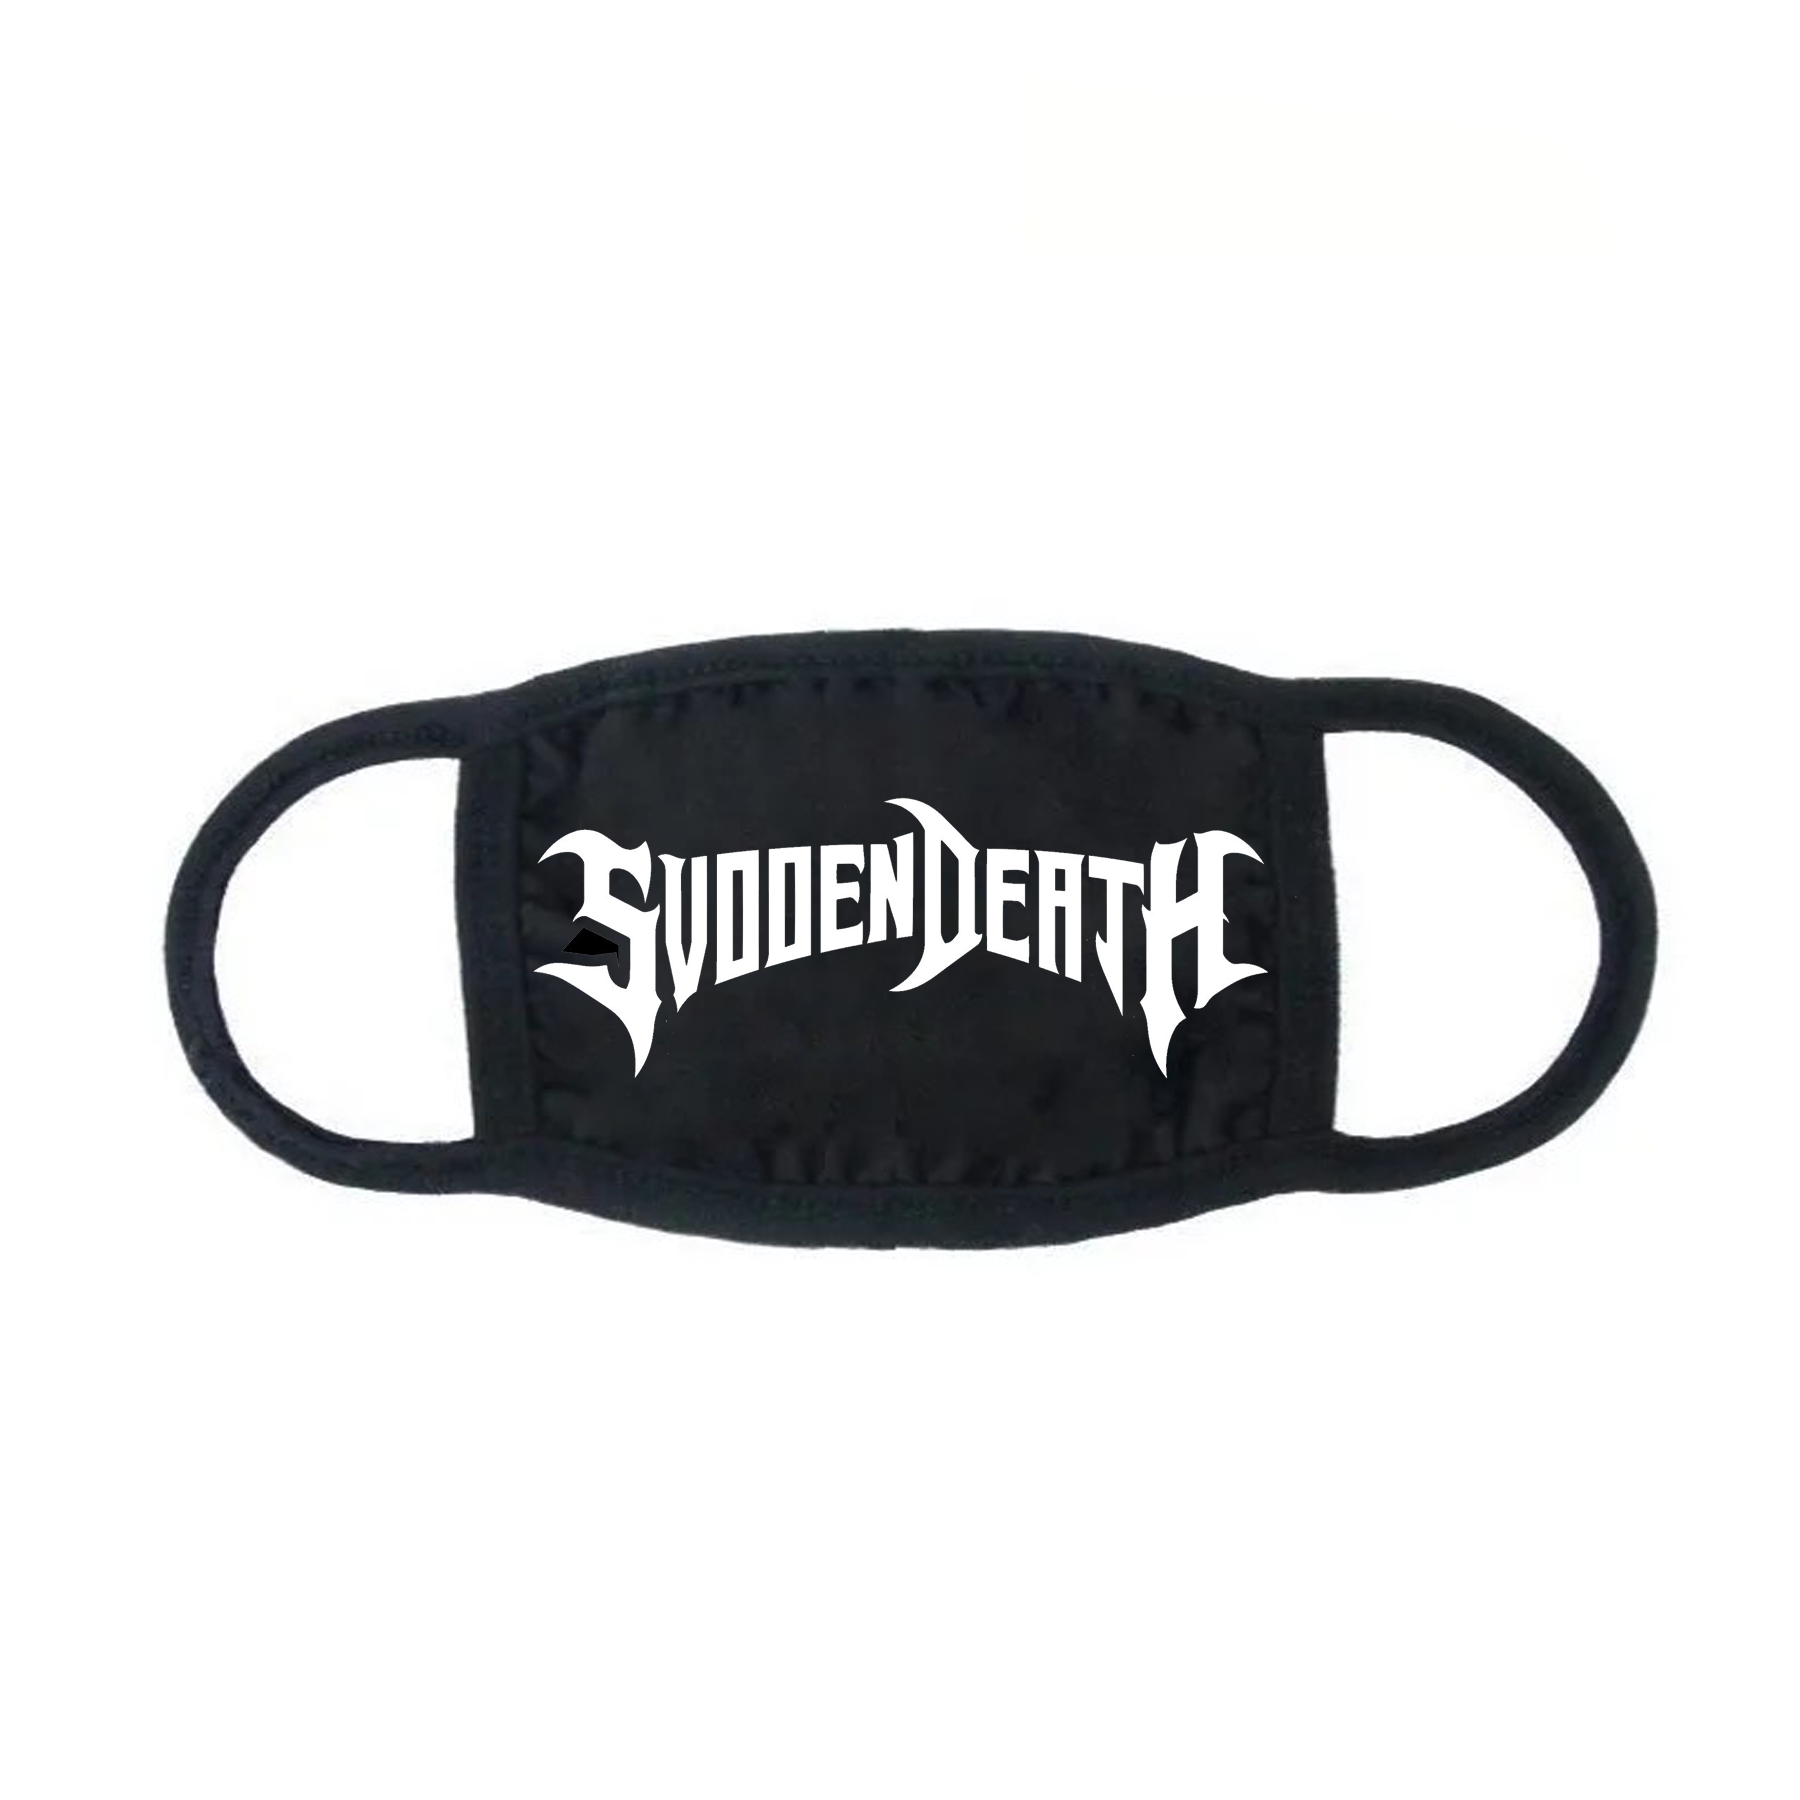 Svdden Death Face Mask